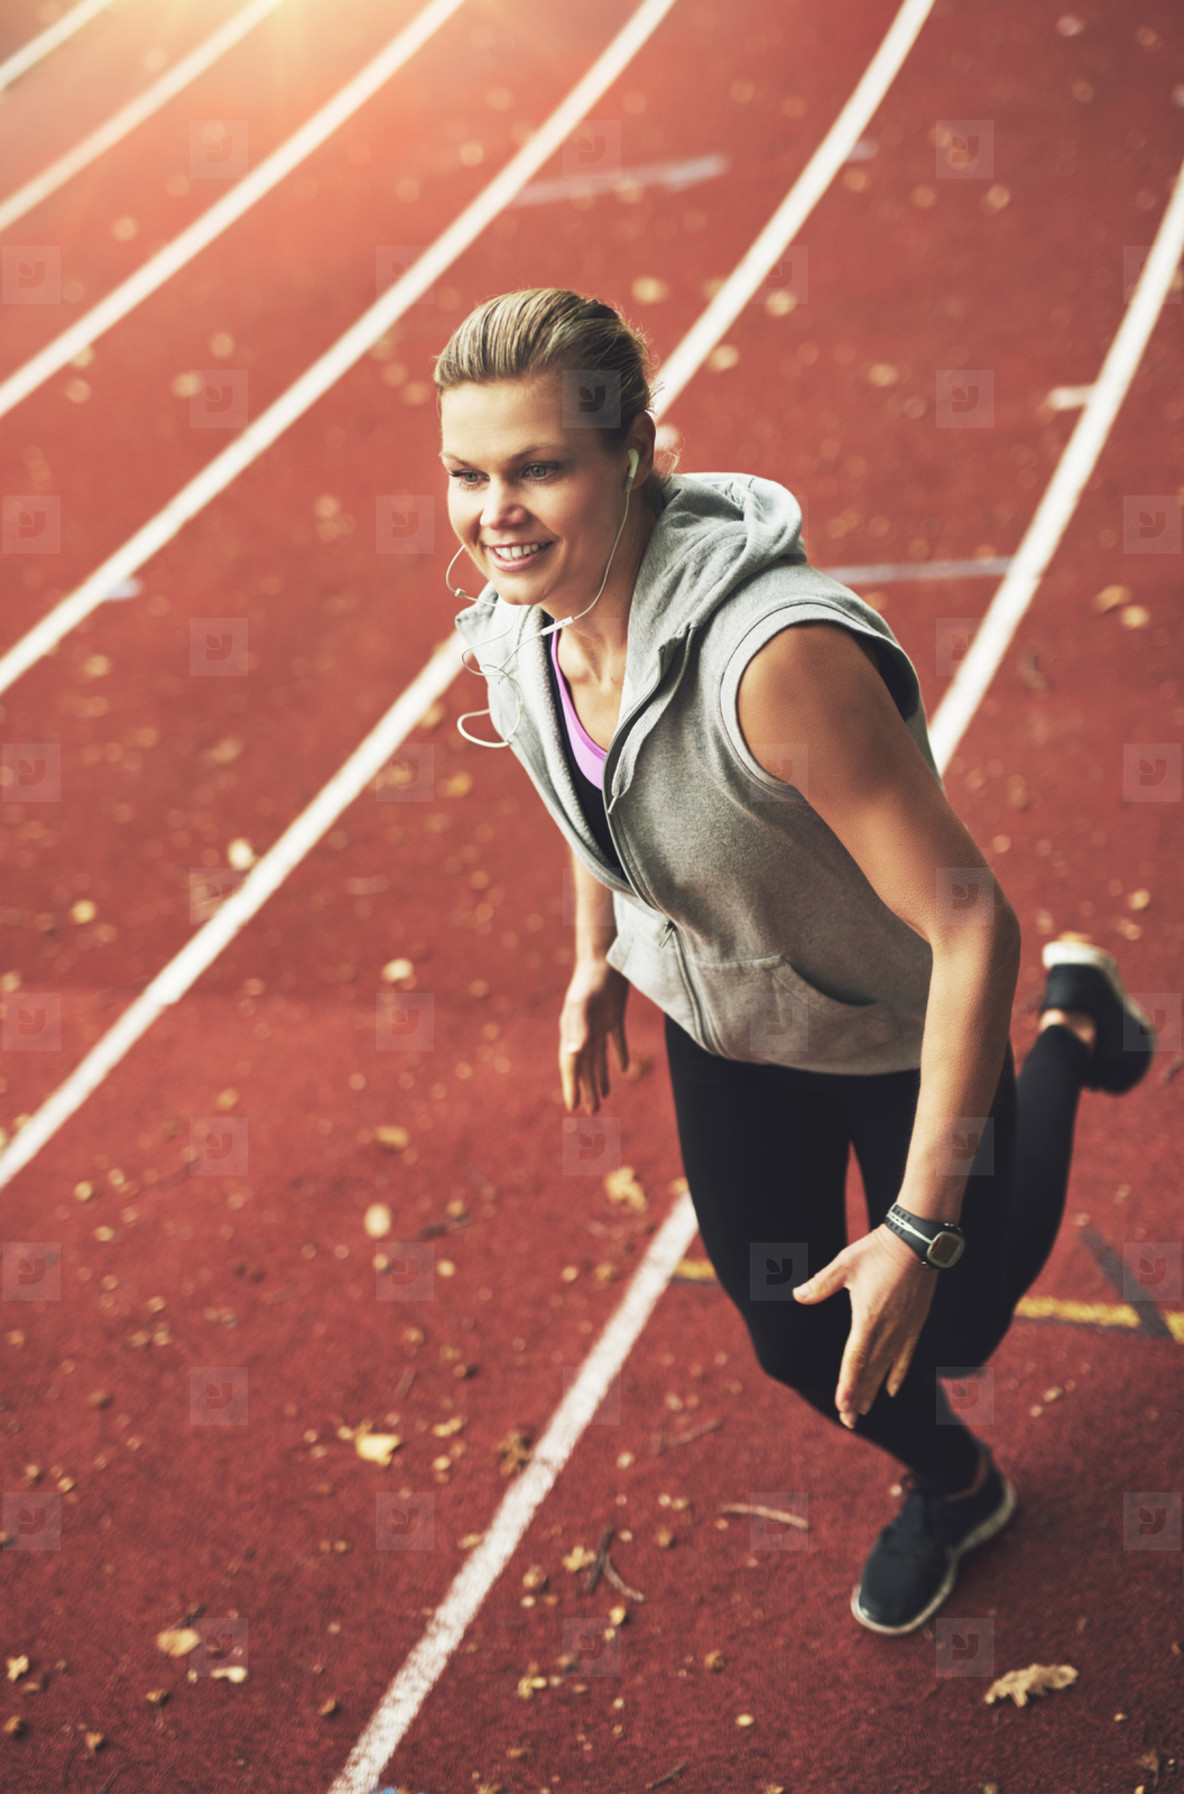 Young female athlete running fast on stadium